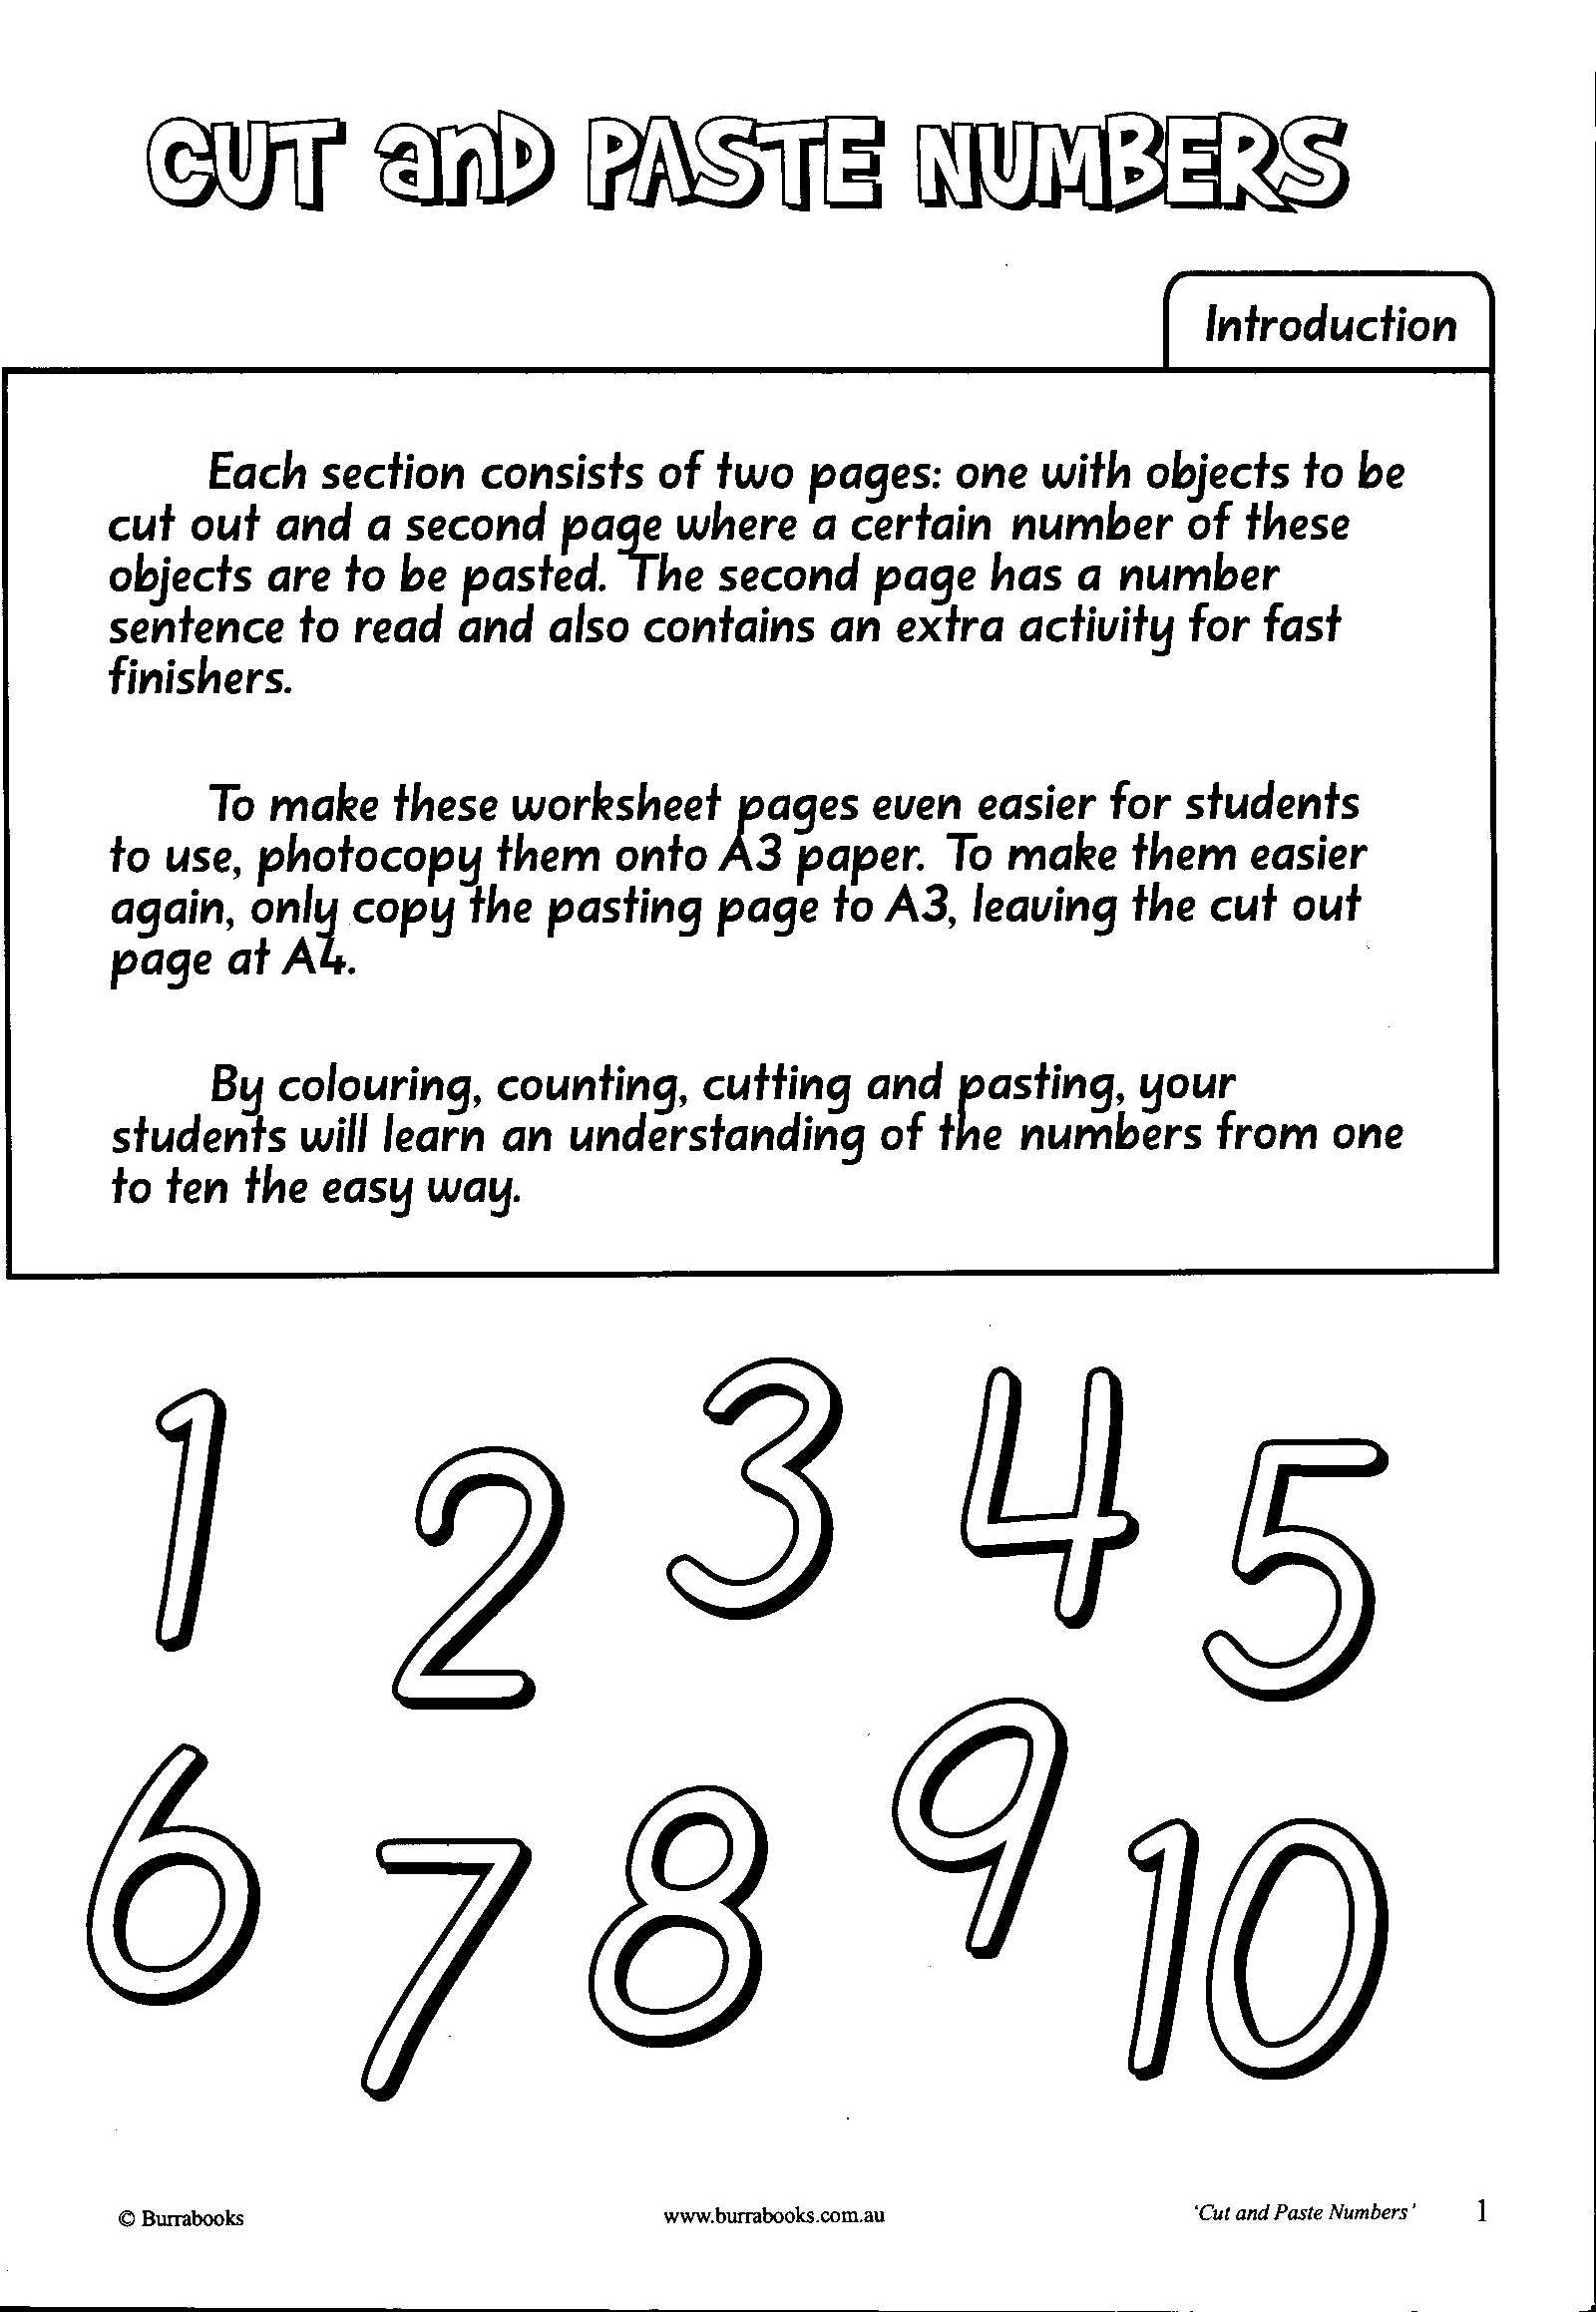 Cut and Paste Numbers-41978